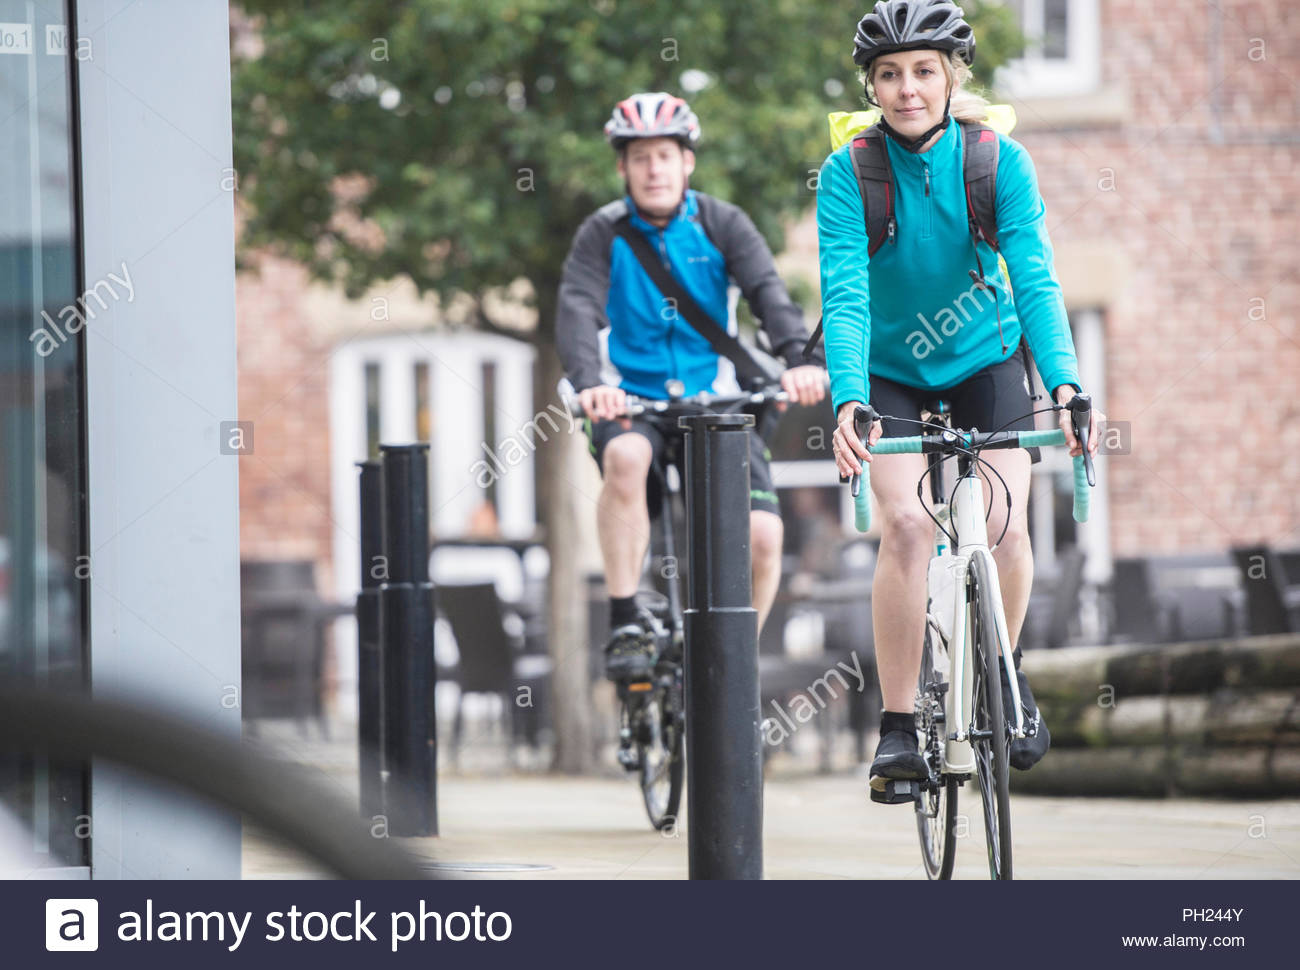 Colleagues arriving at work after commuting by bicycle - Stock Image